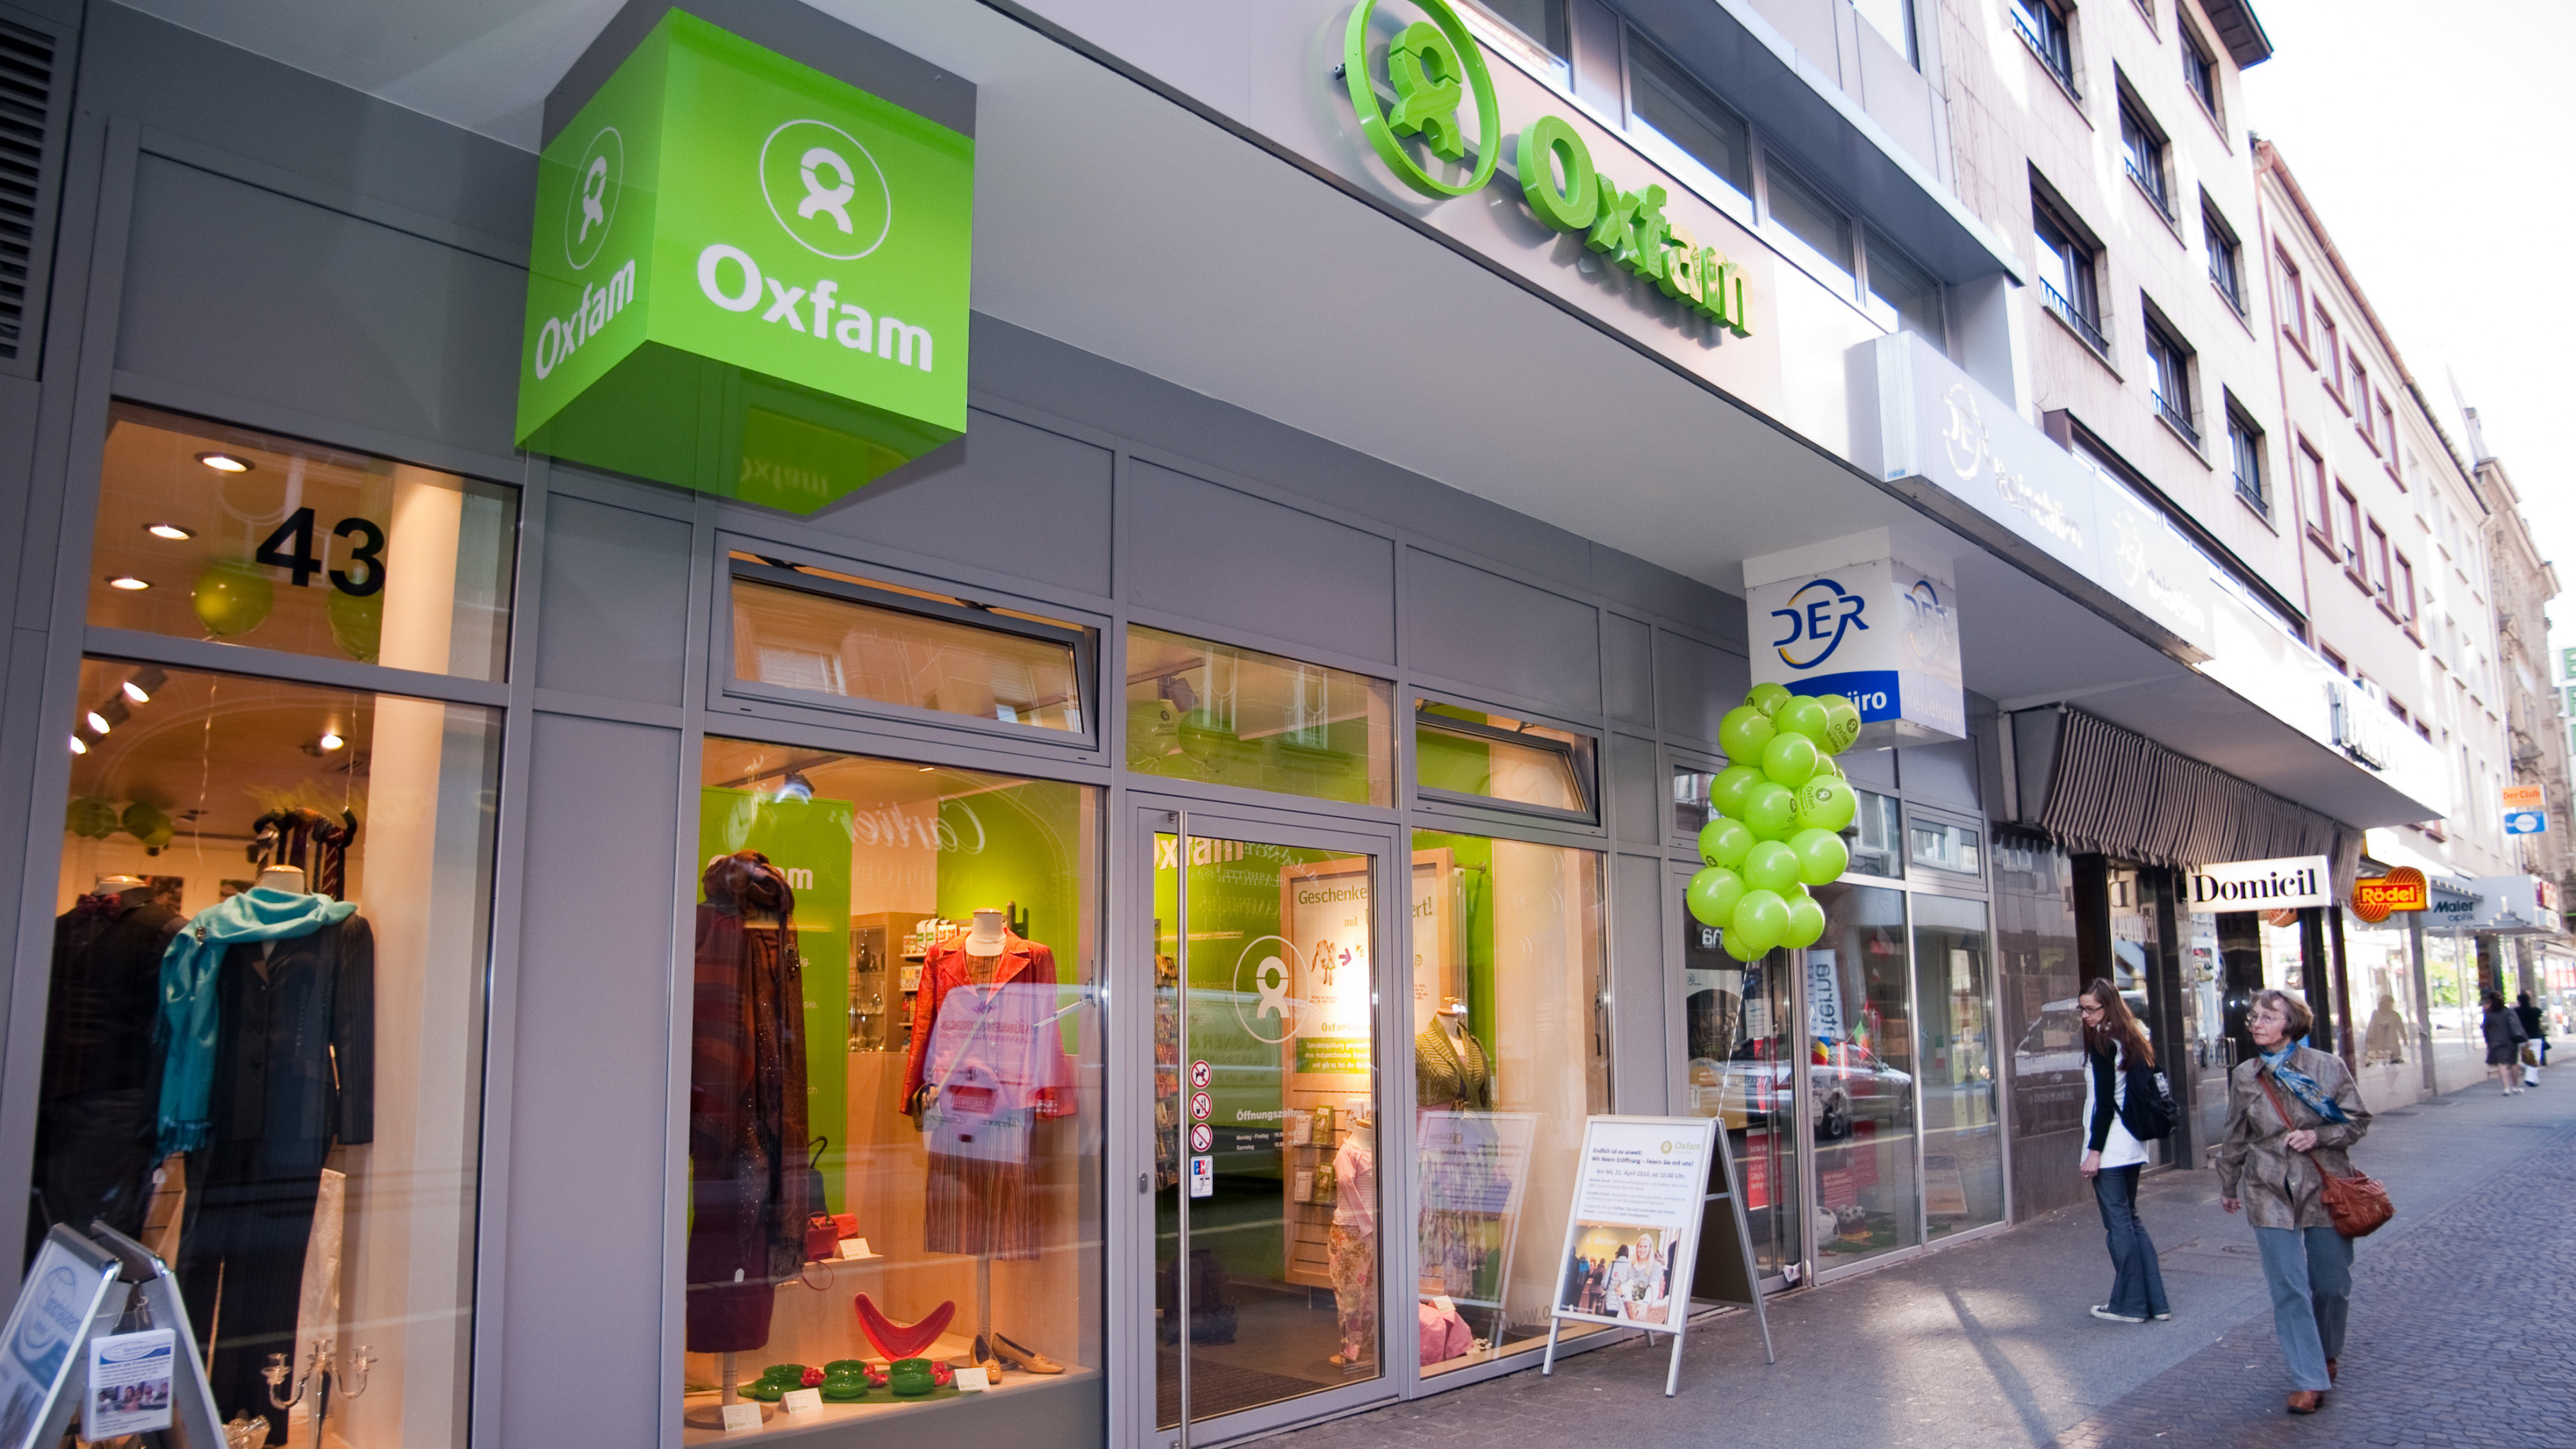 Secondhand kaufen spenden in karlsruhe oxfam shop for Karlsruhe shopping